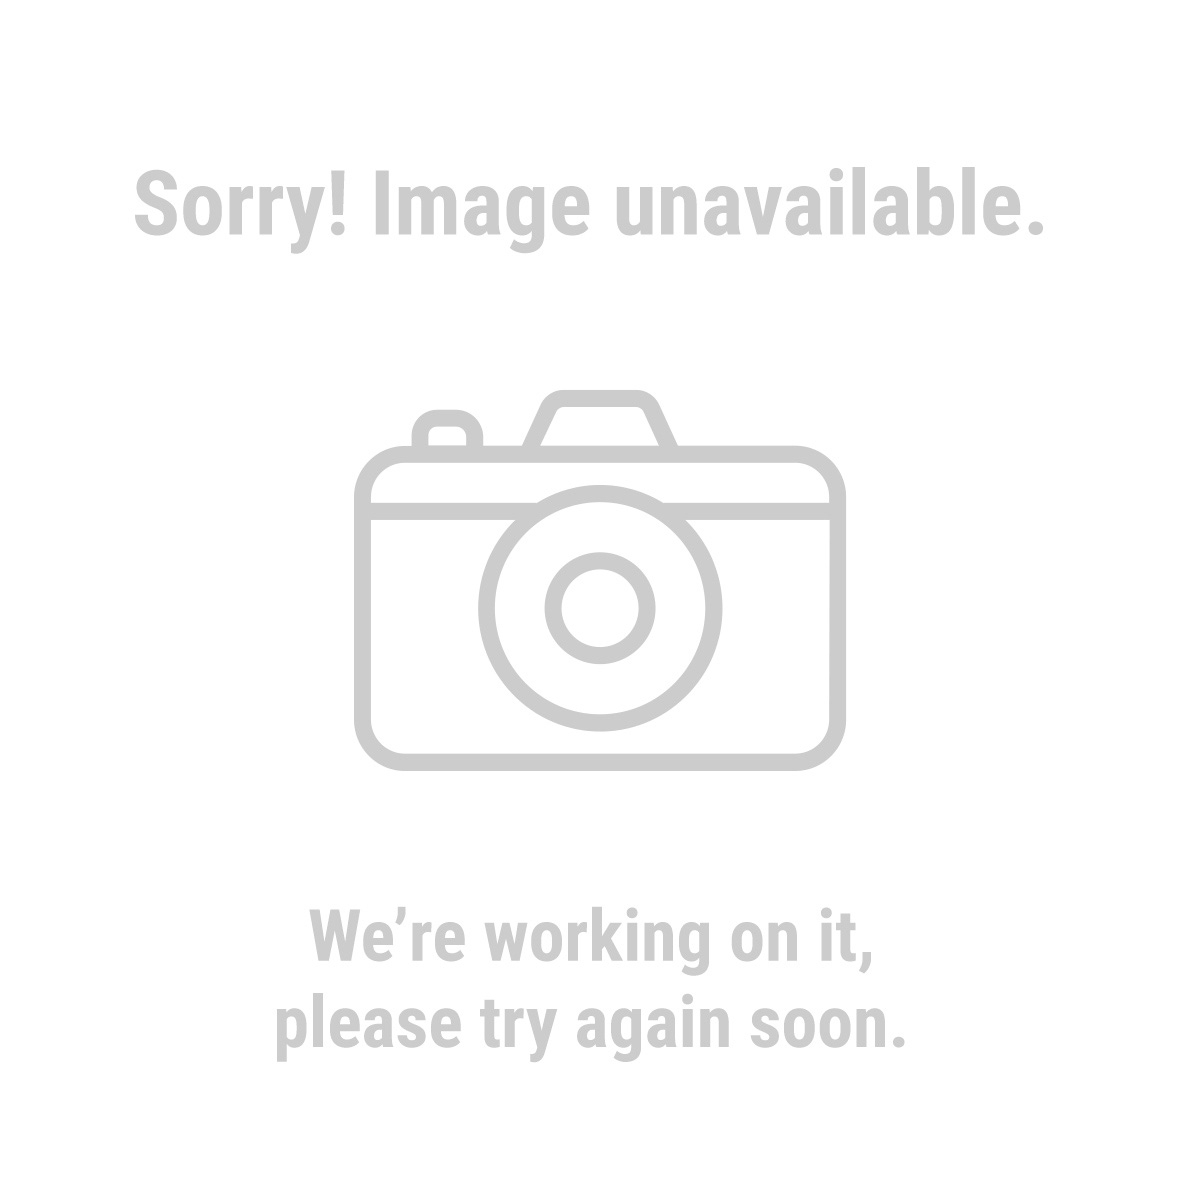 Storehouse 67544 50 Piece Lynch Pin Kit